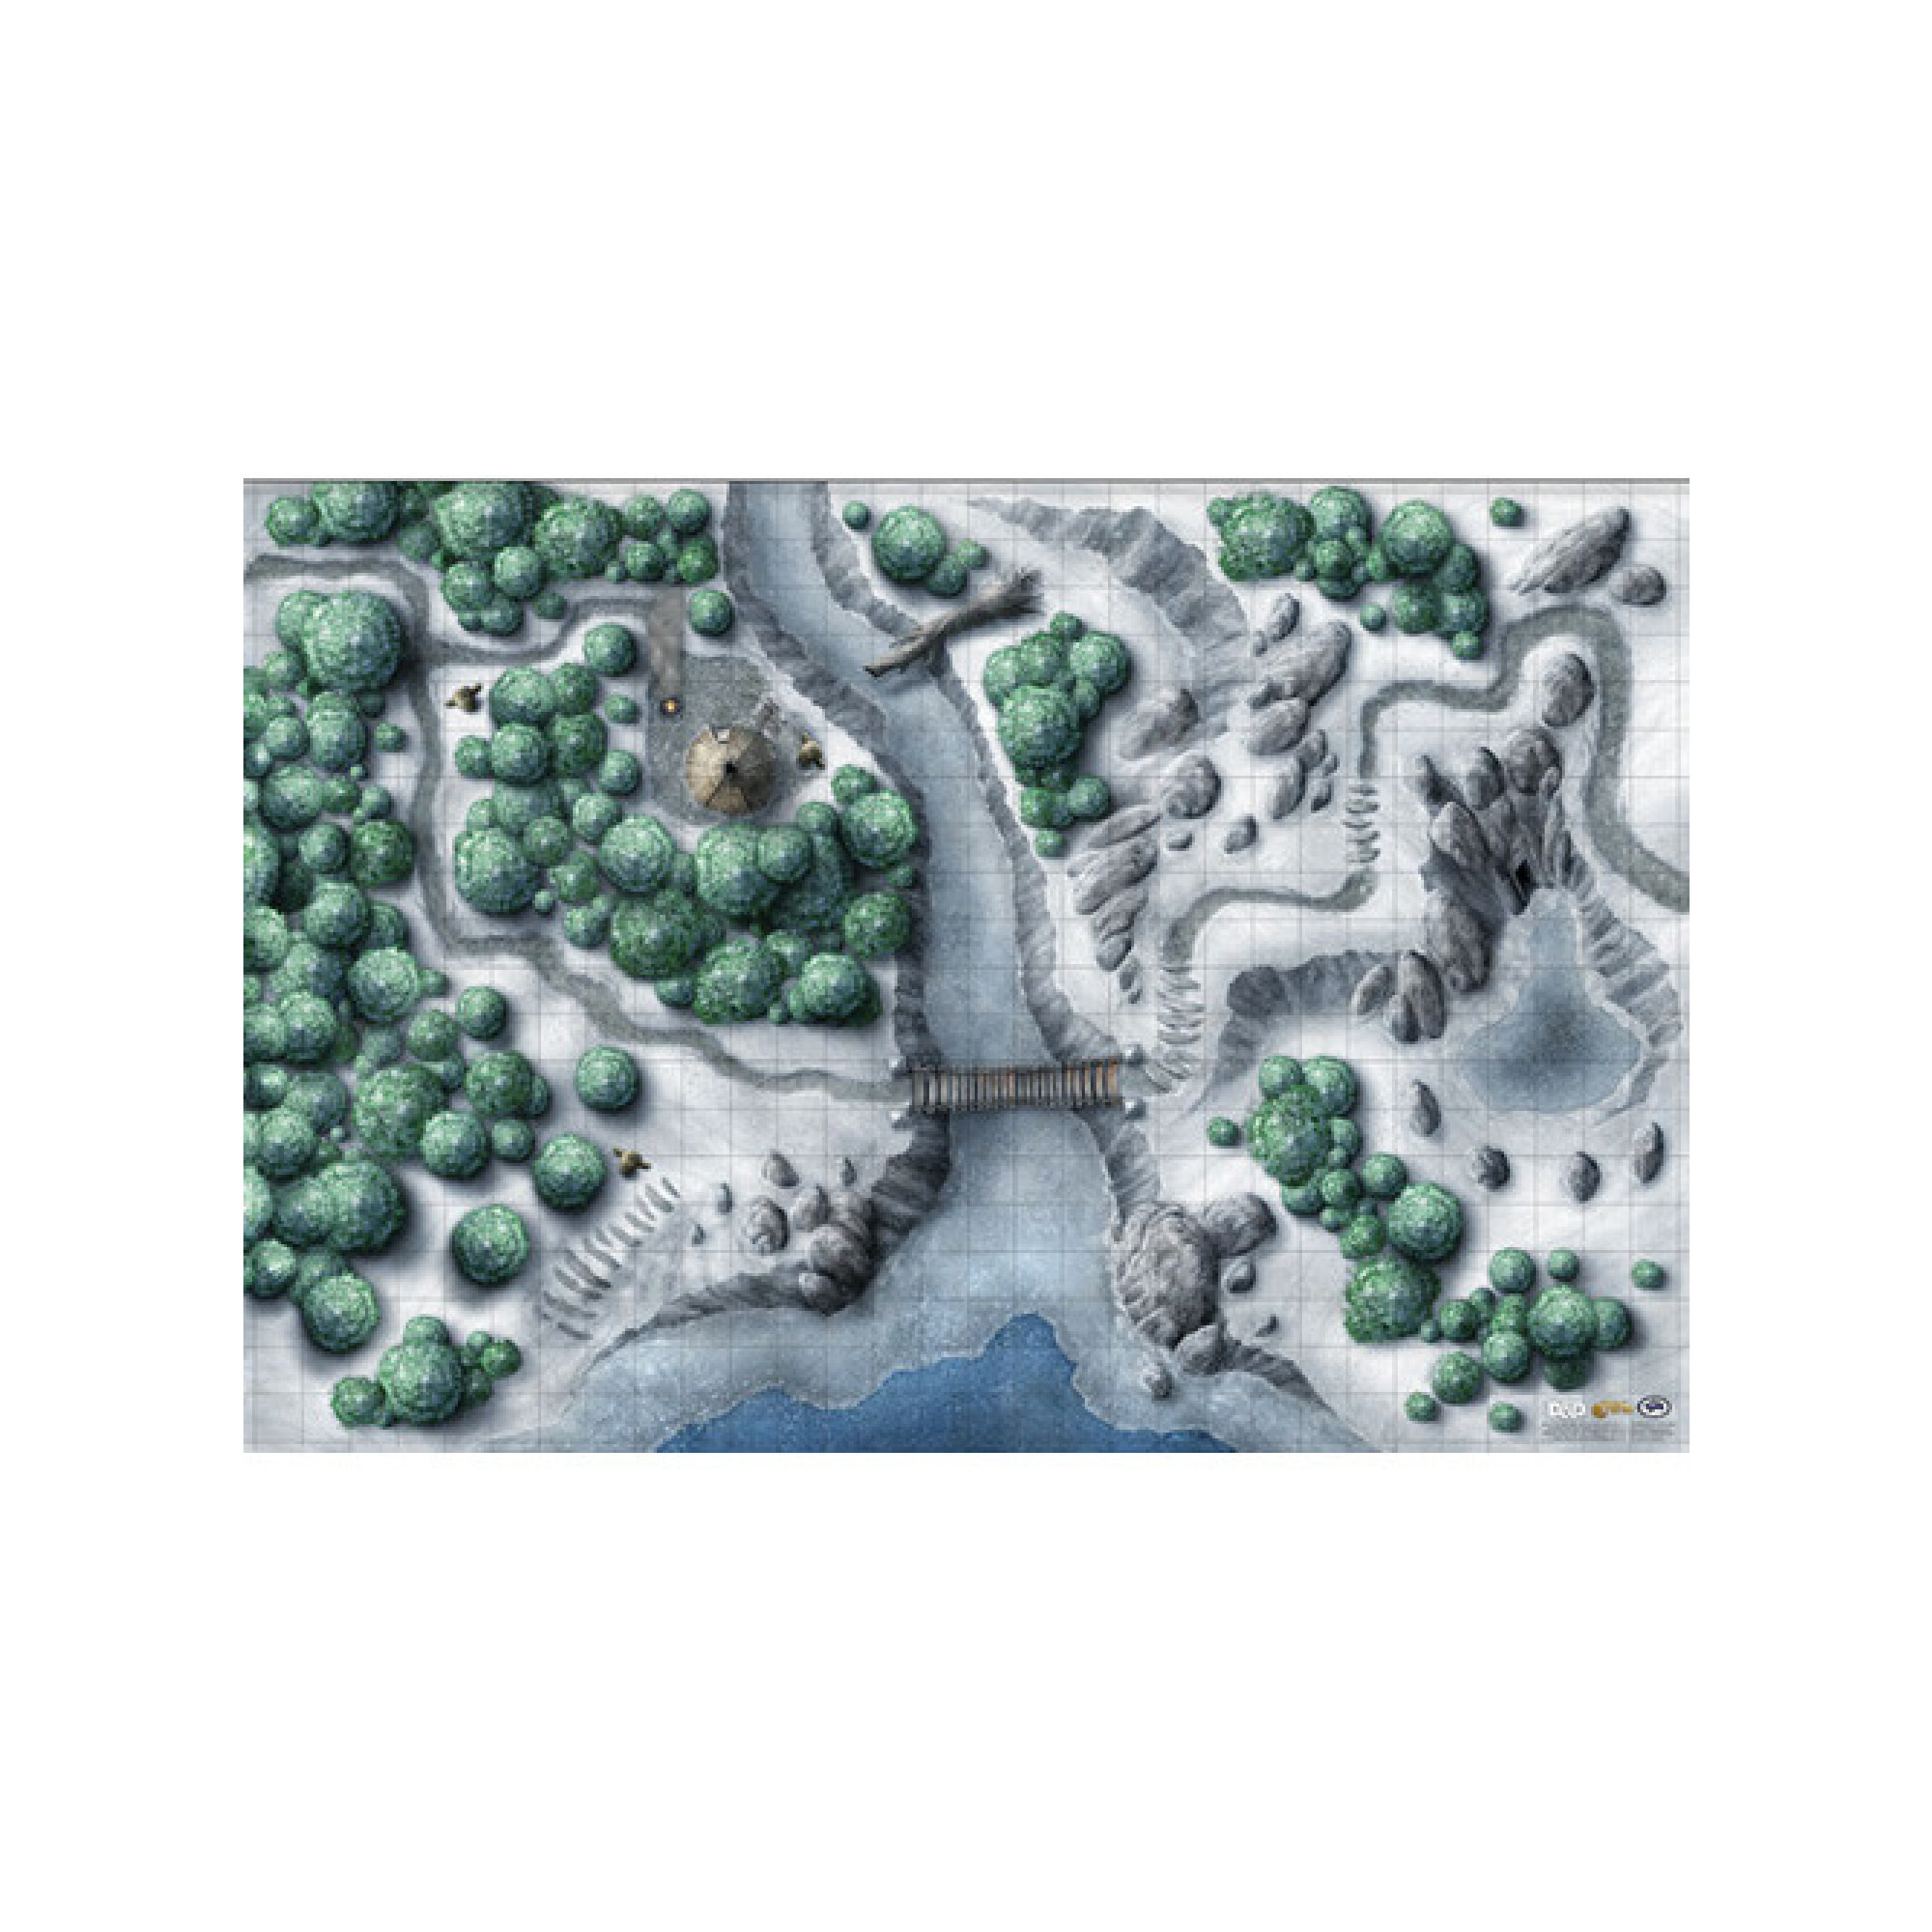 Gale Force Nine D&D Dungeons & Dragons: Icewind Dale Encounter Map Set (2pc 20 X 30 In)